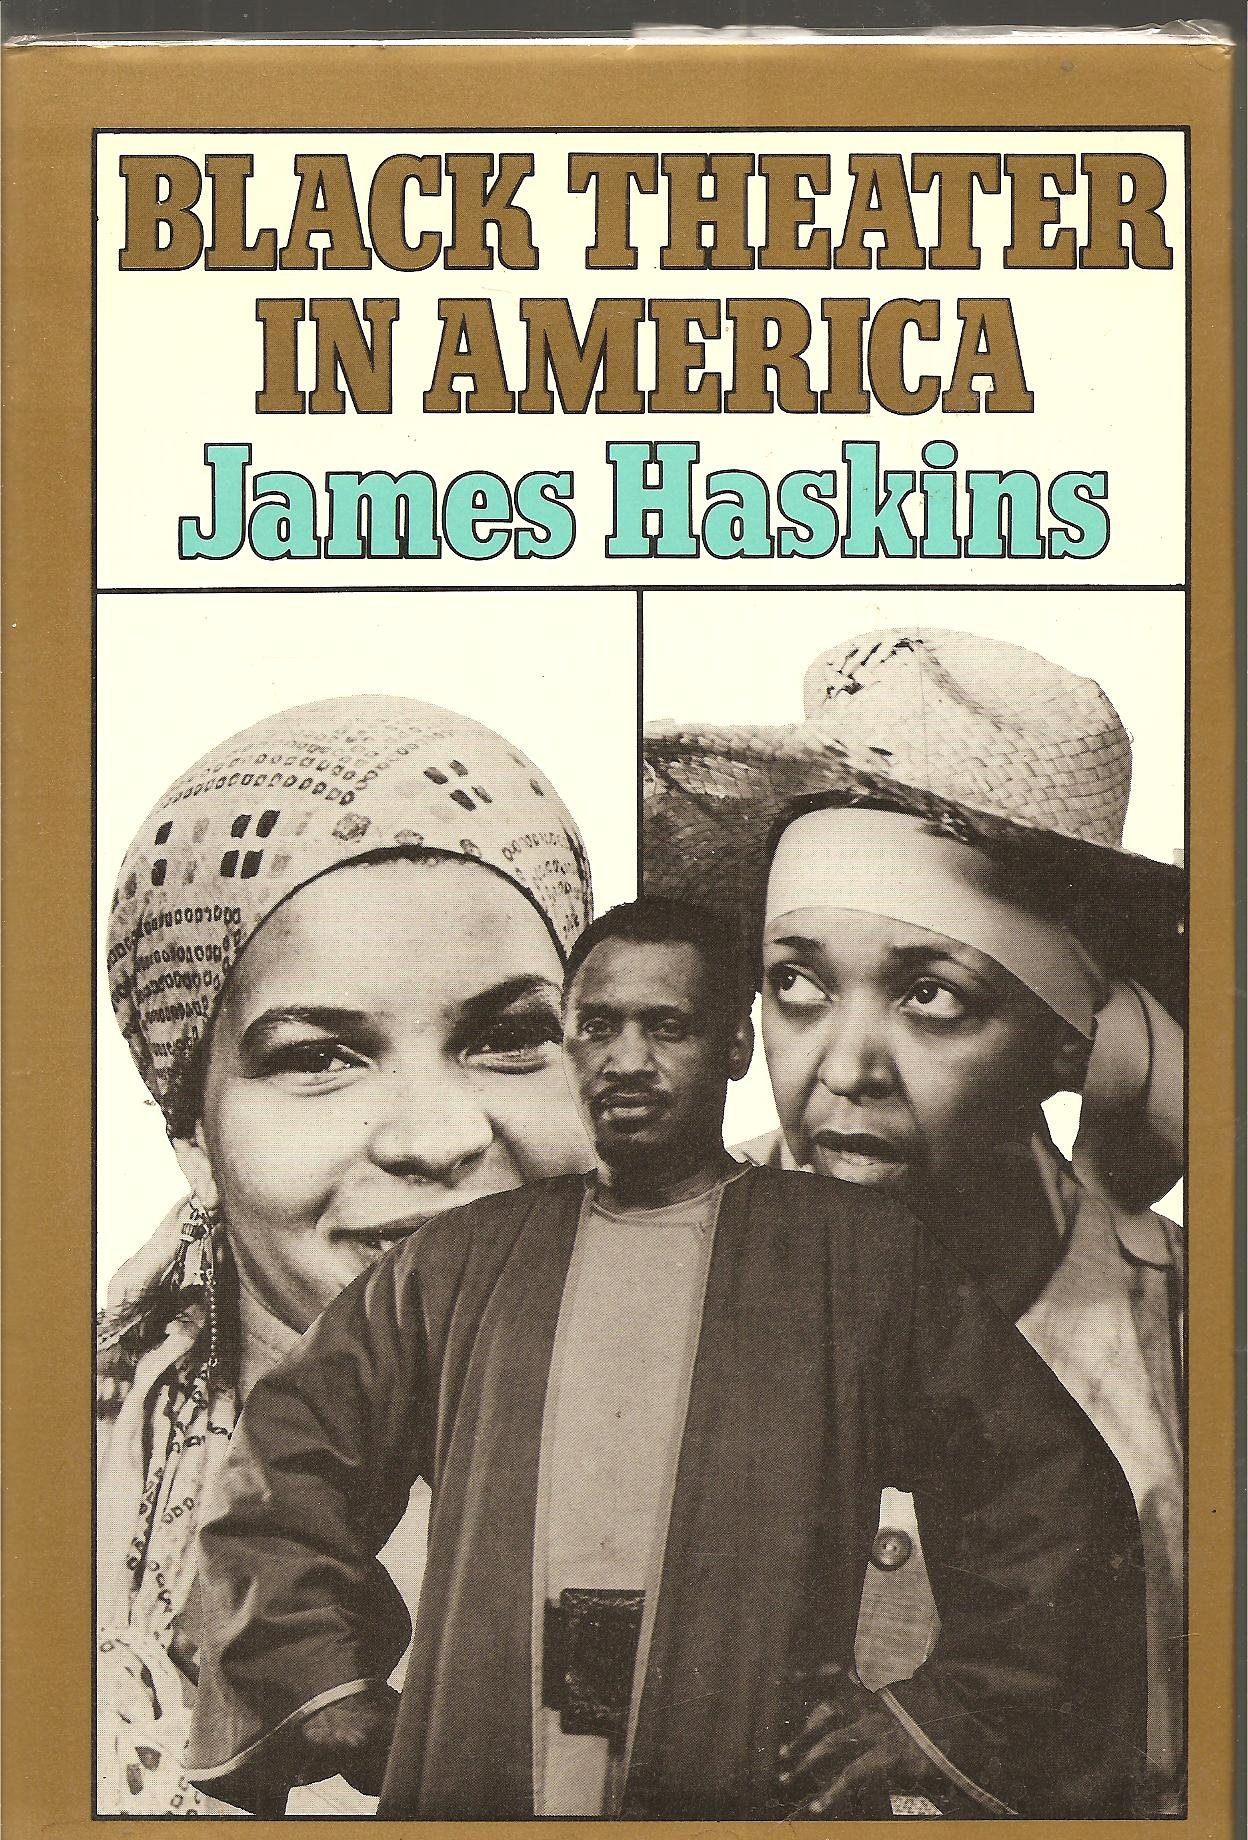 Black Theater in America – James Haskins